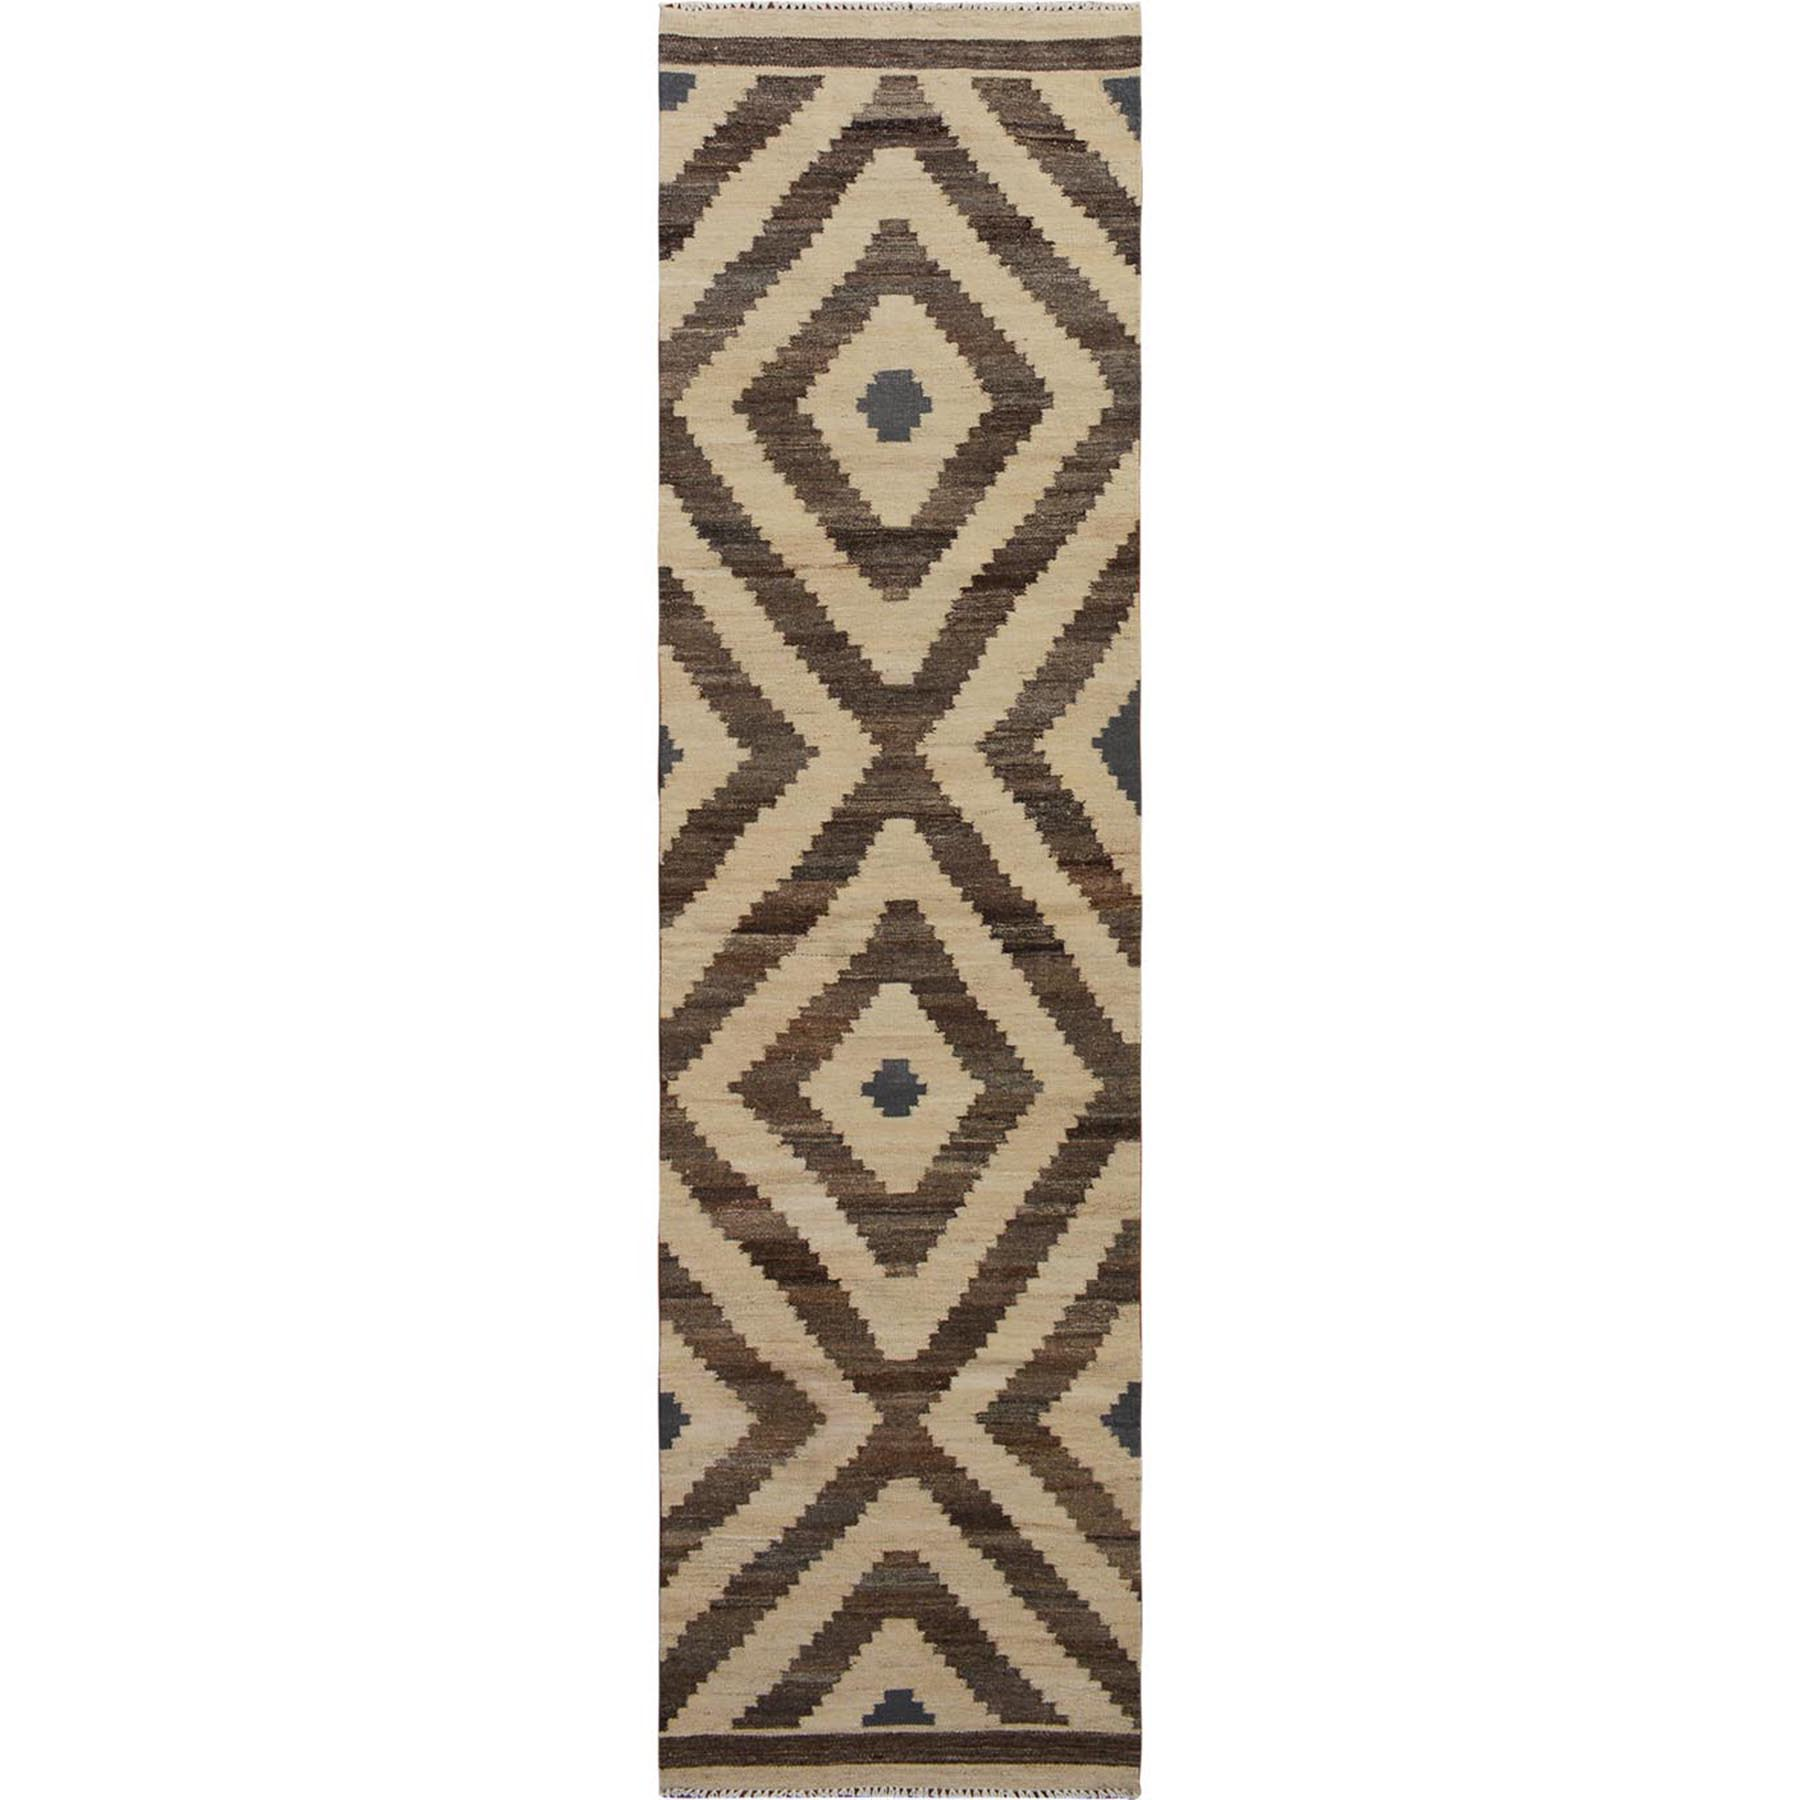 "2'5""x10'1"" Brown Reversible Afghan Kilim Geometric Design Runner Pure Wool Hand Woven Rug"